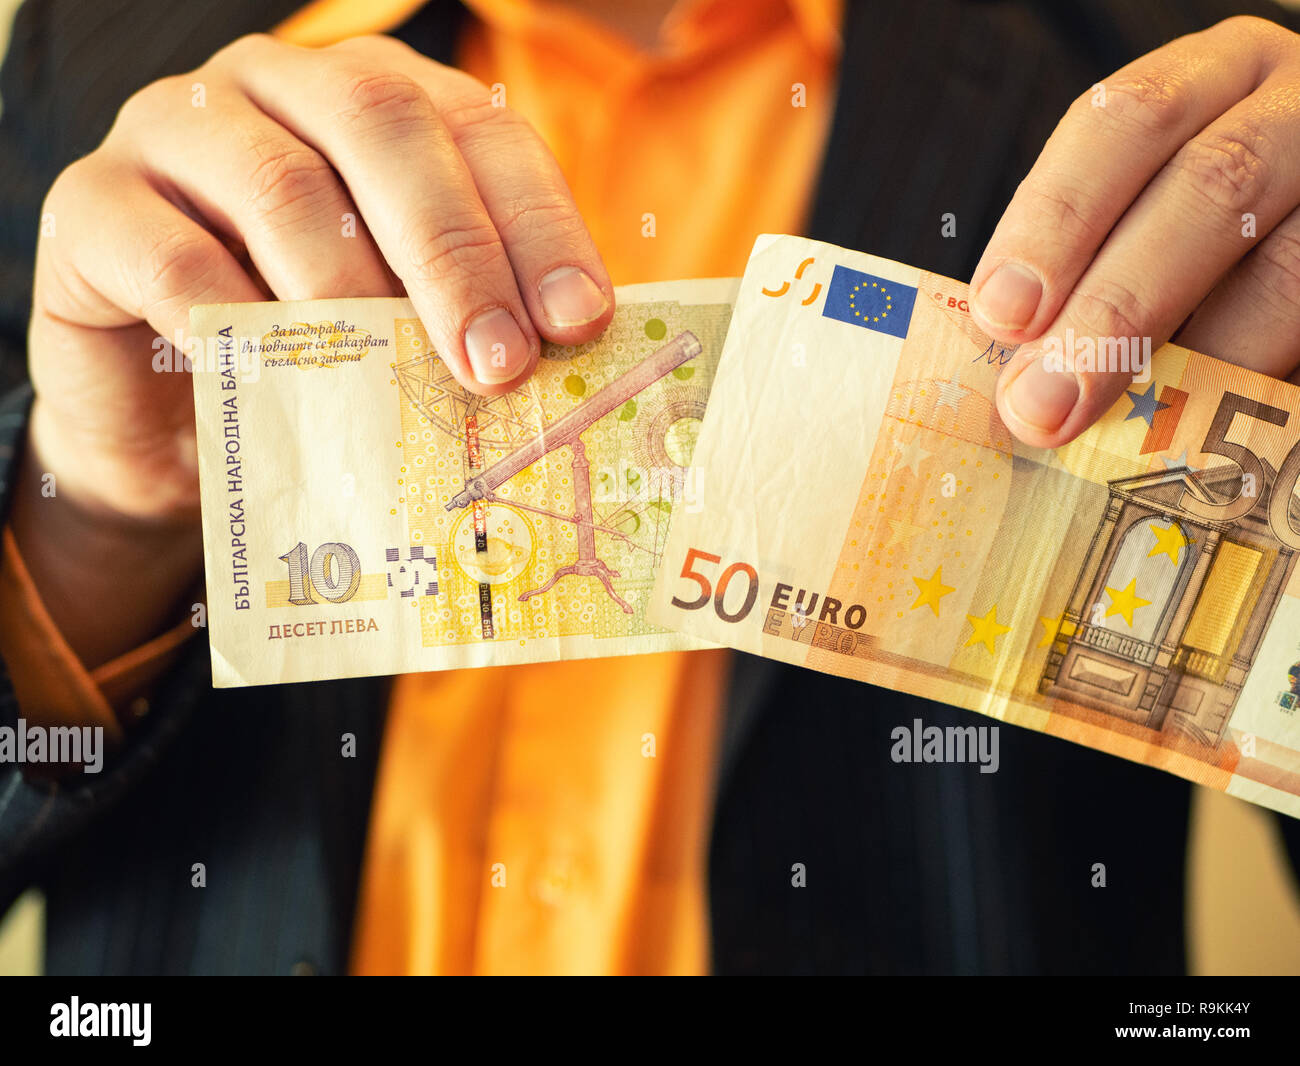 closeup of man hands show Bulgarian lev money in one and fifty Euros in other hand. concept of Bulgaria integration to European Union EU - Stock Image